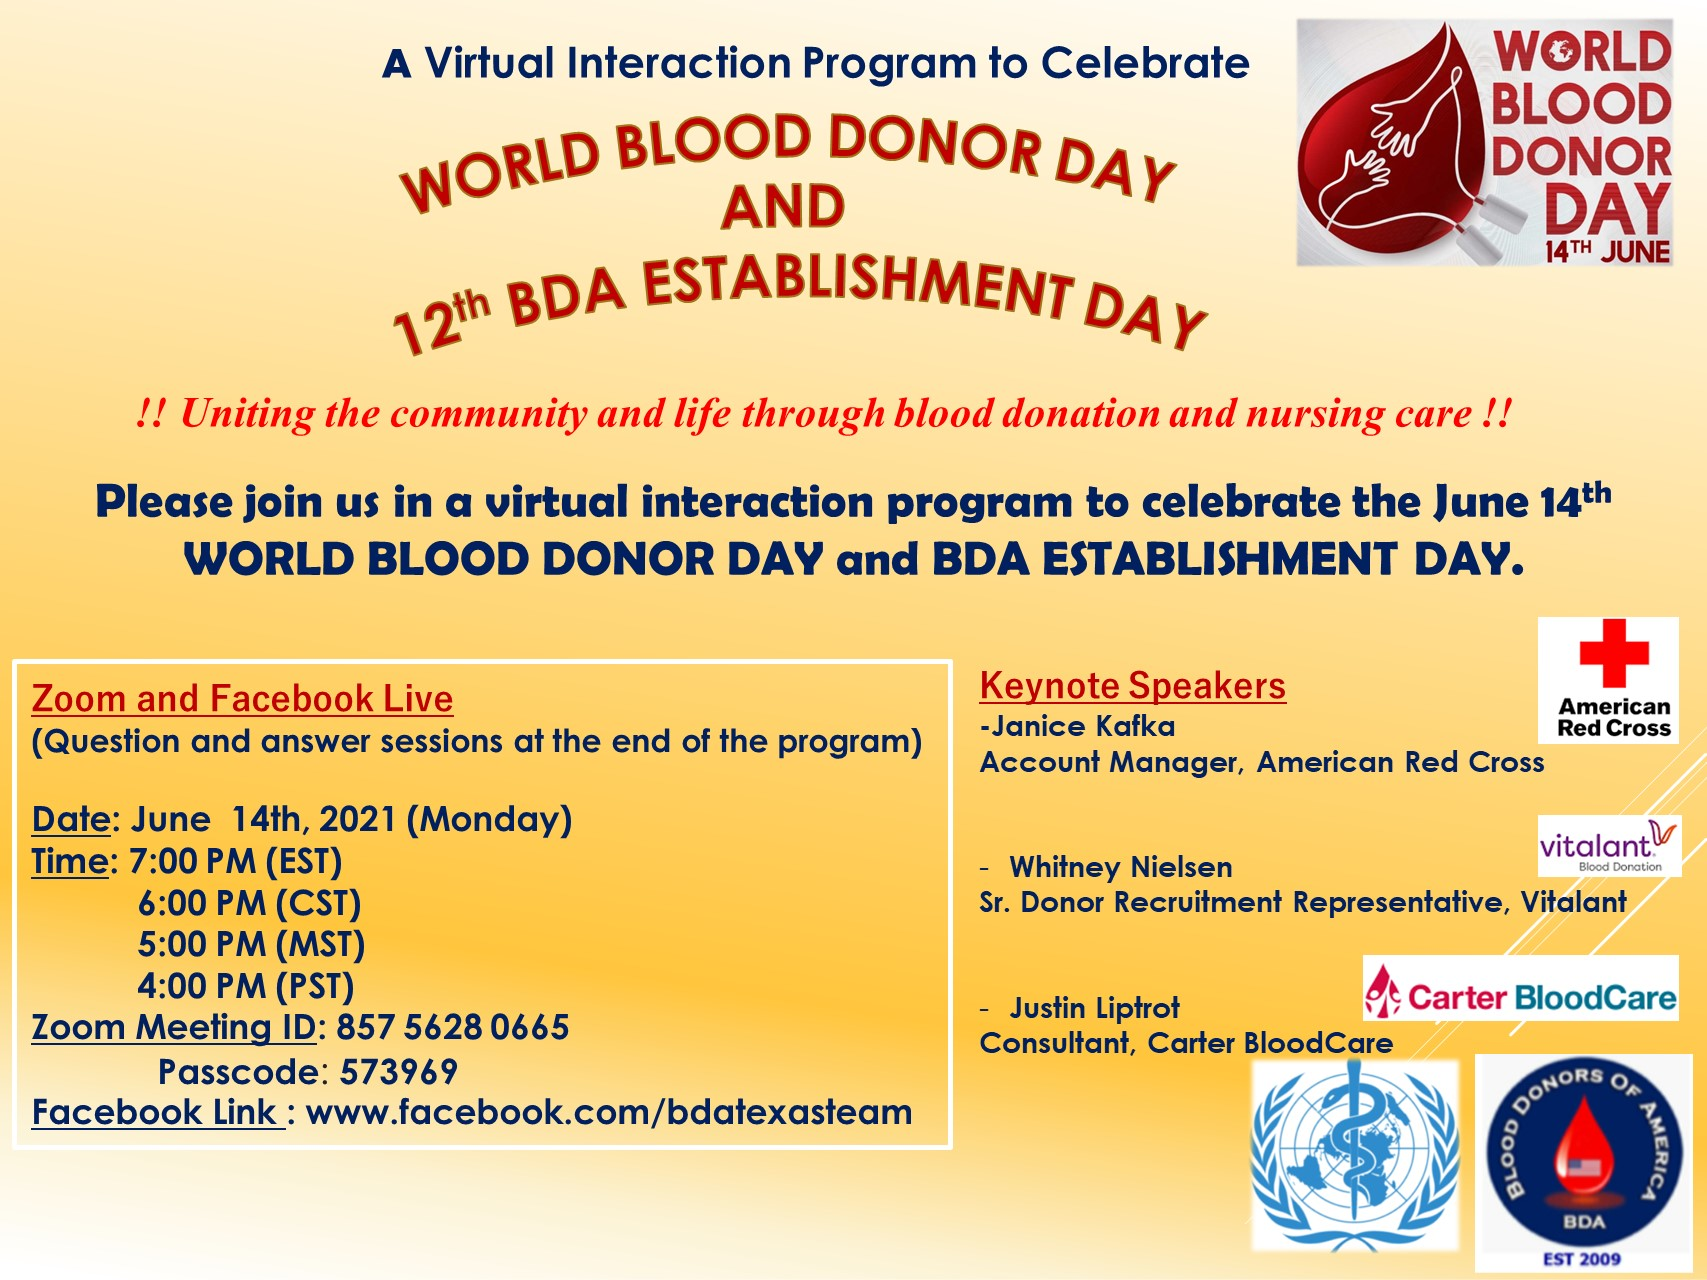 Central - World Blood Donors Day - June 14 2021